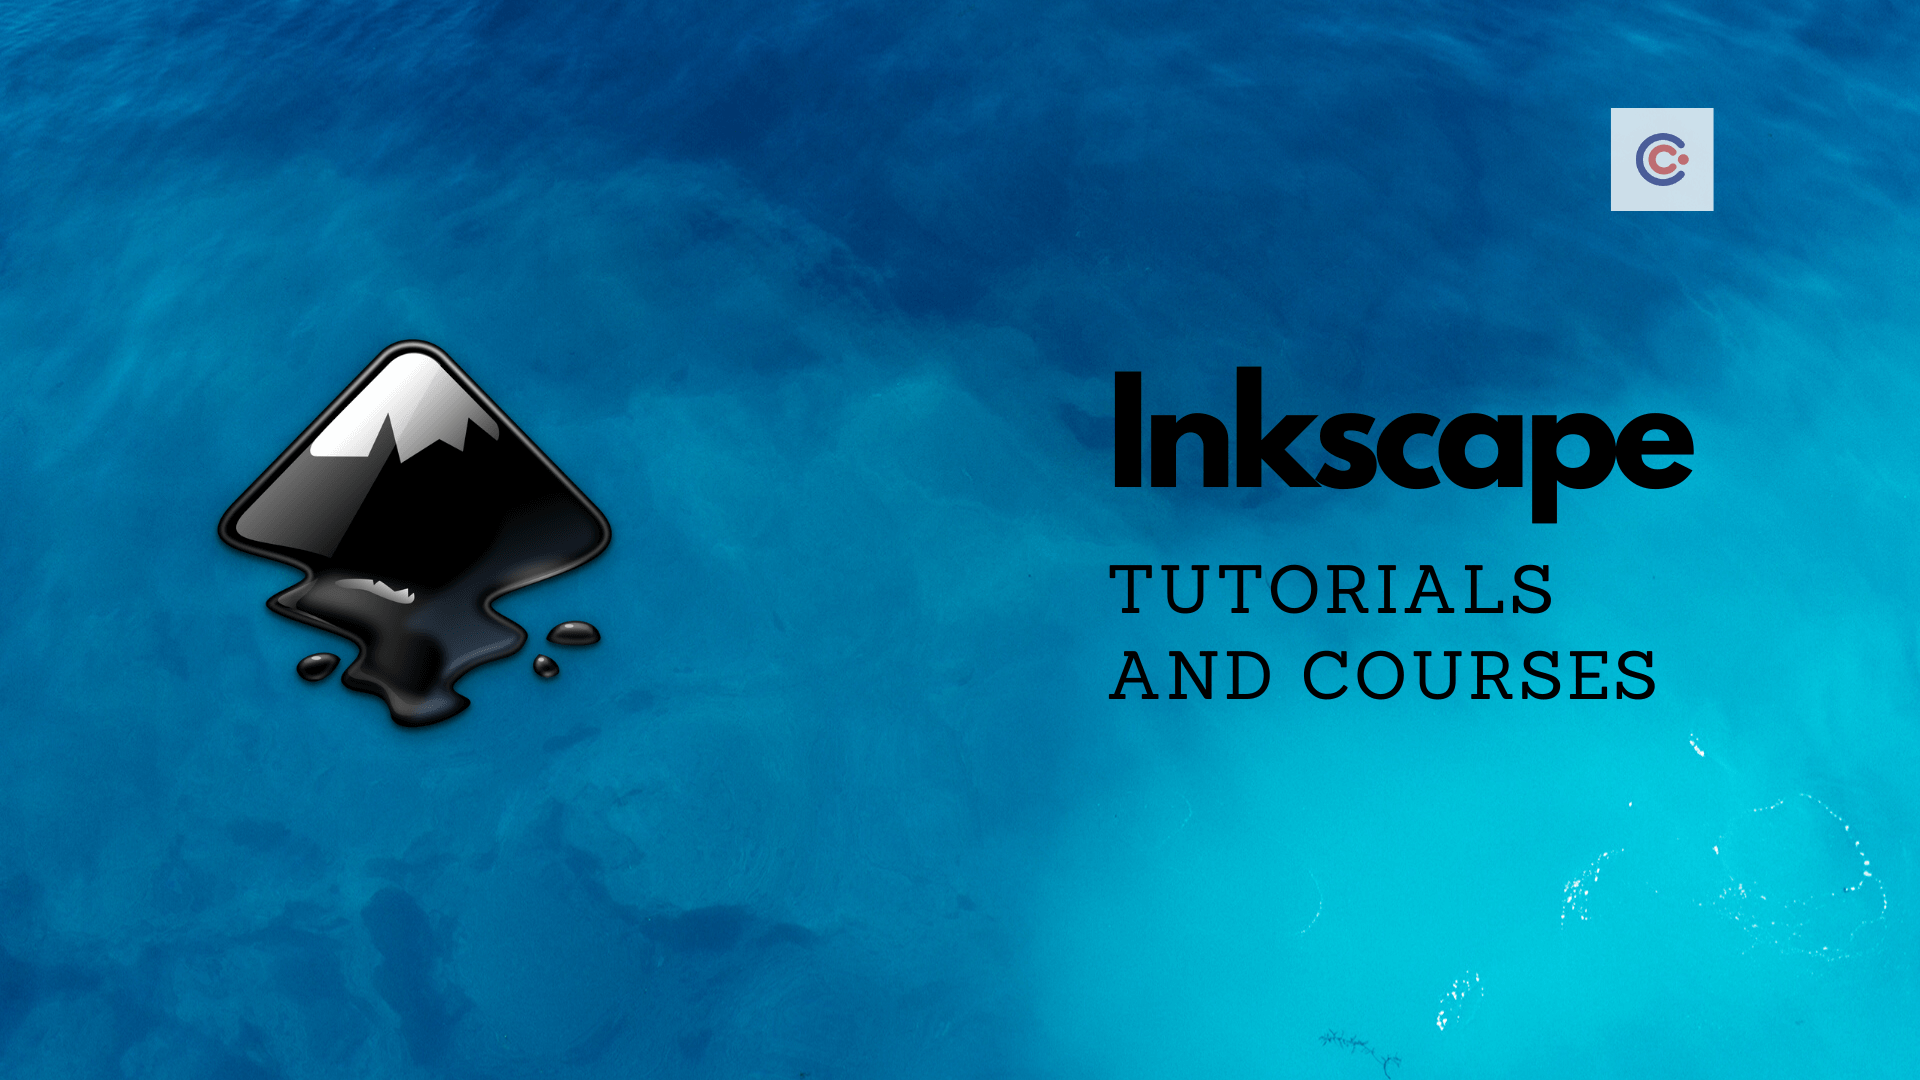 8 Best Inkscape Tutorials and Courses - Learn Inkscape Online